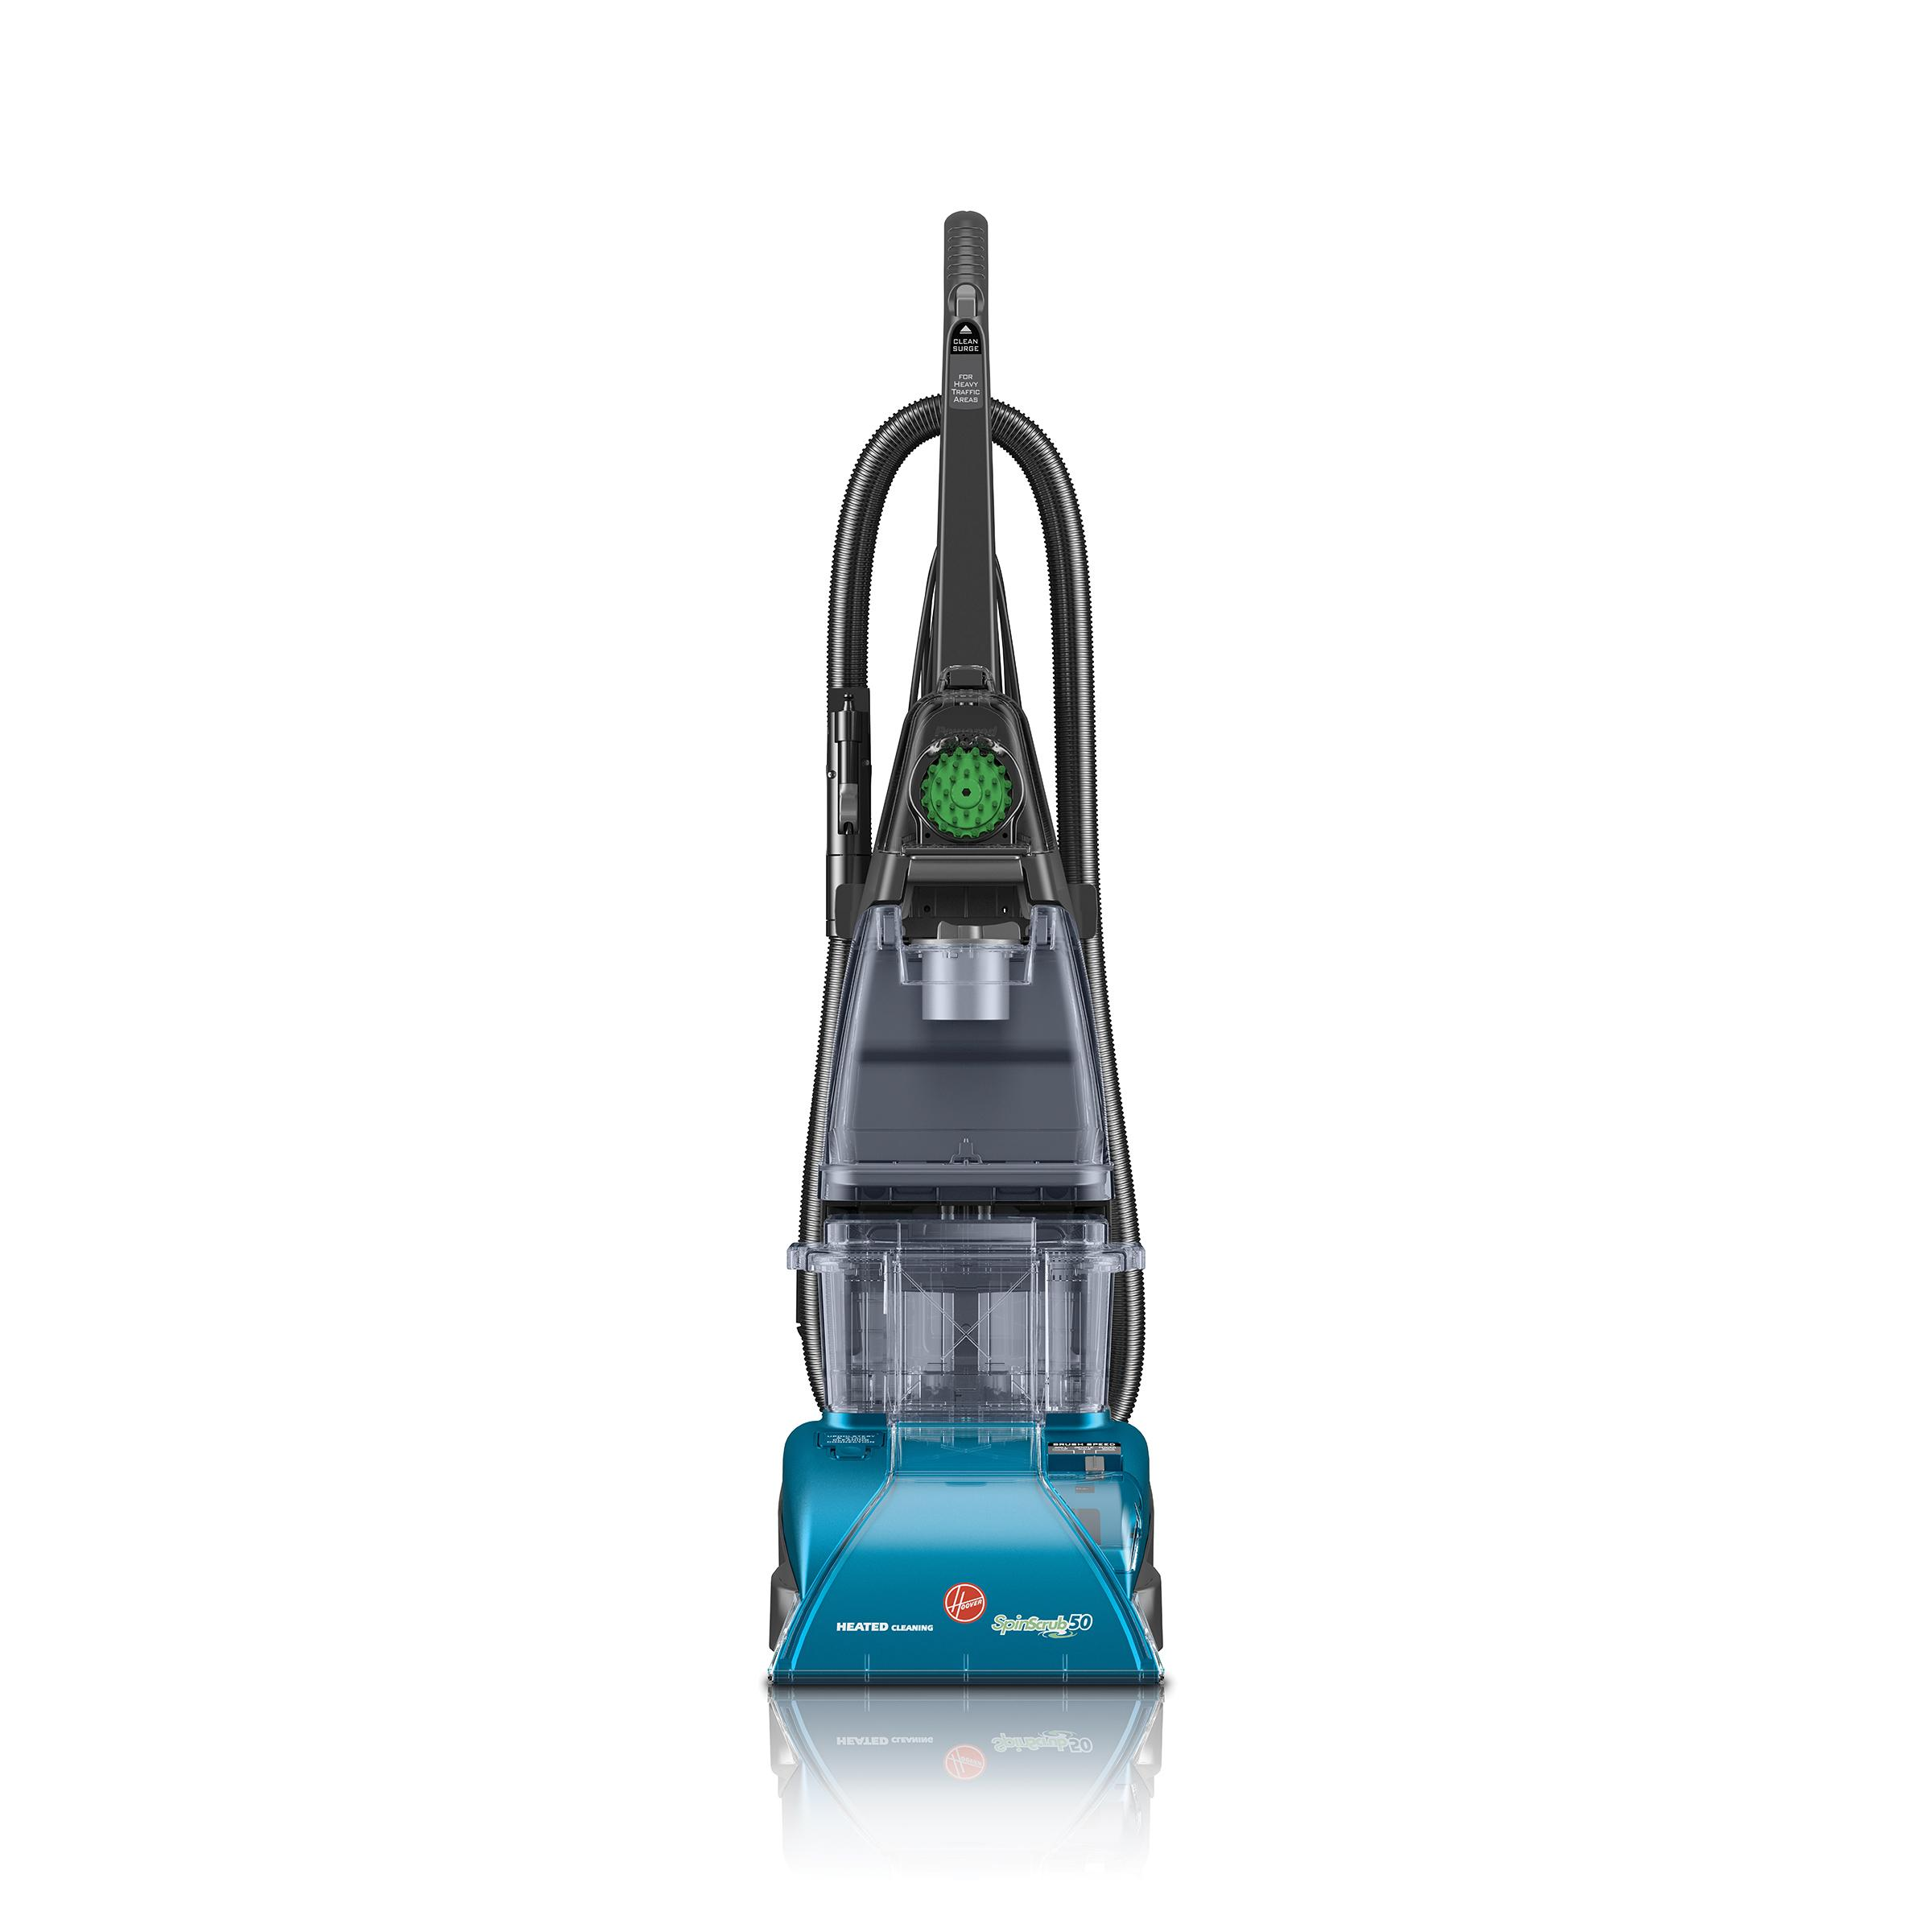 Amazon.com - Hoover Carpet Cleaner SteamVac with Clean ...